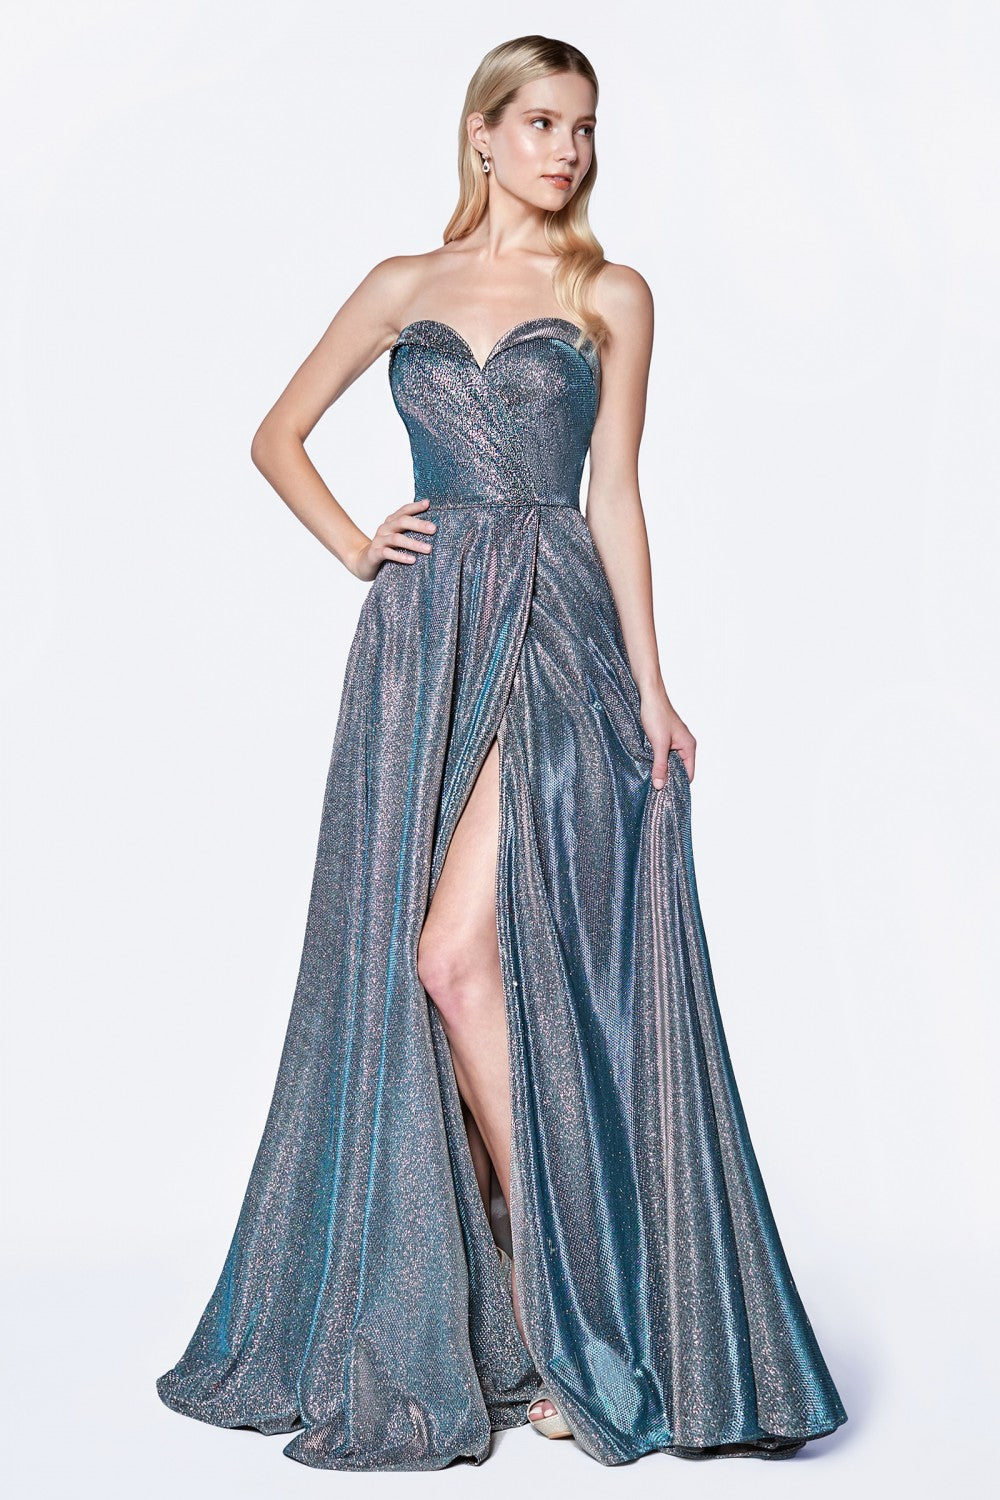 Strapless Ball Gown With Sweetheart Neckline And Leg Slit